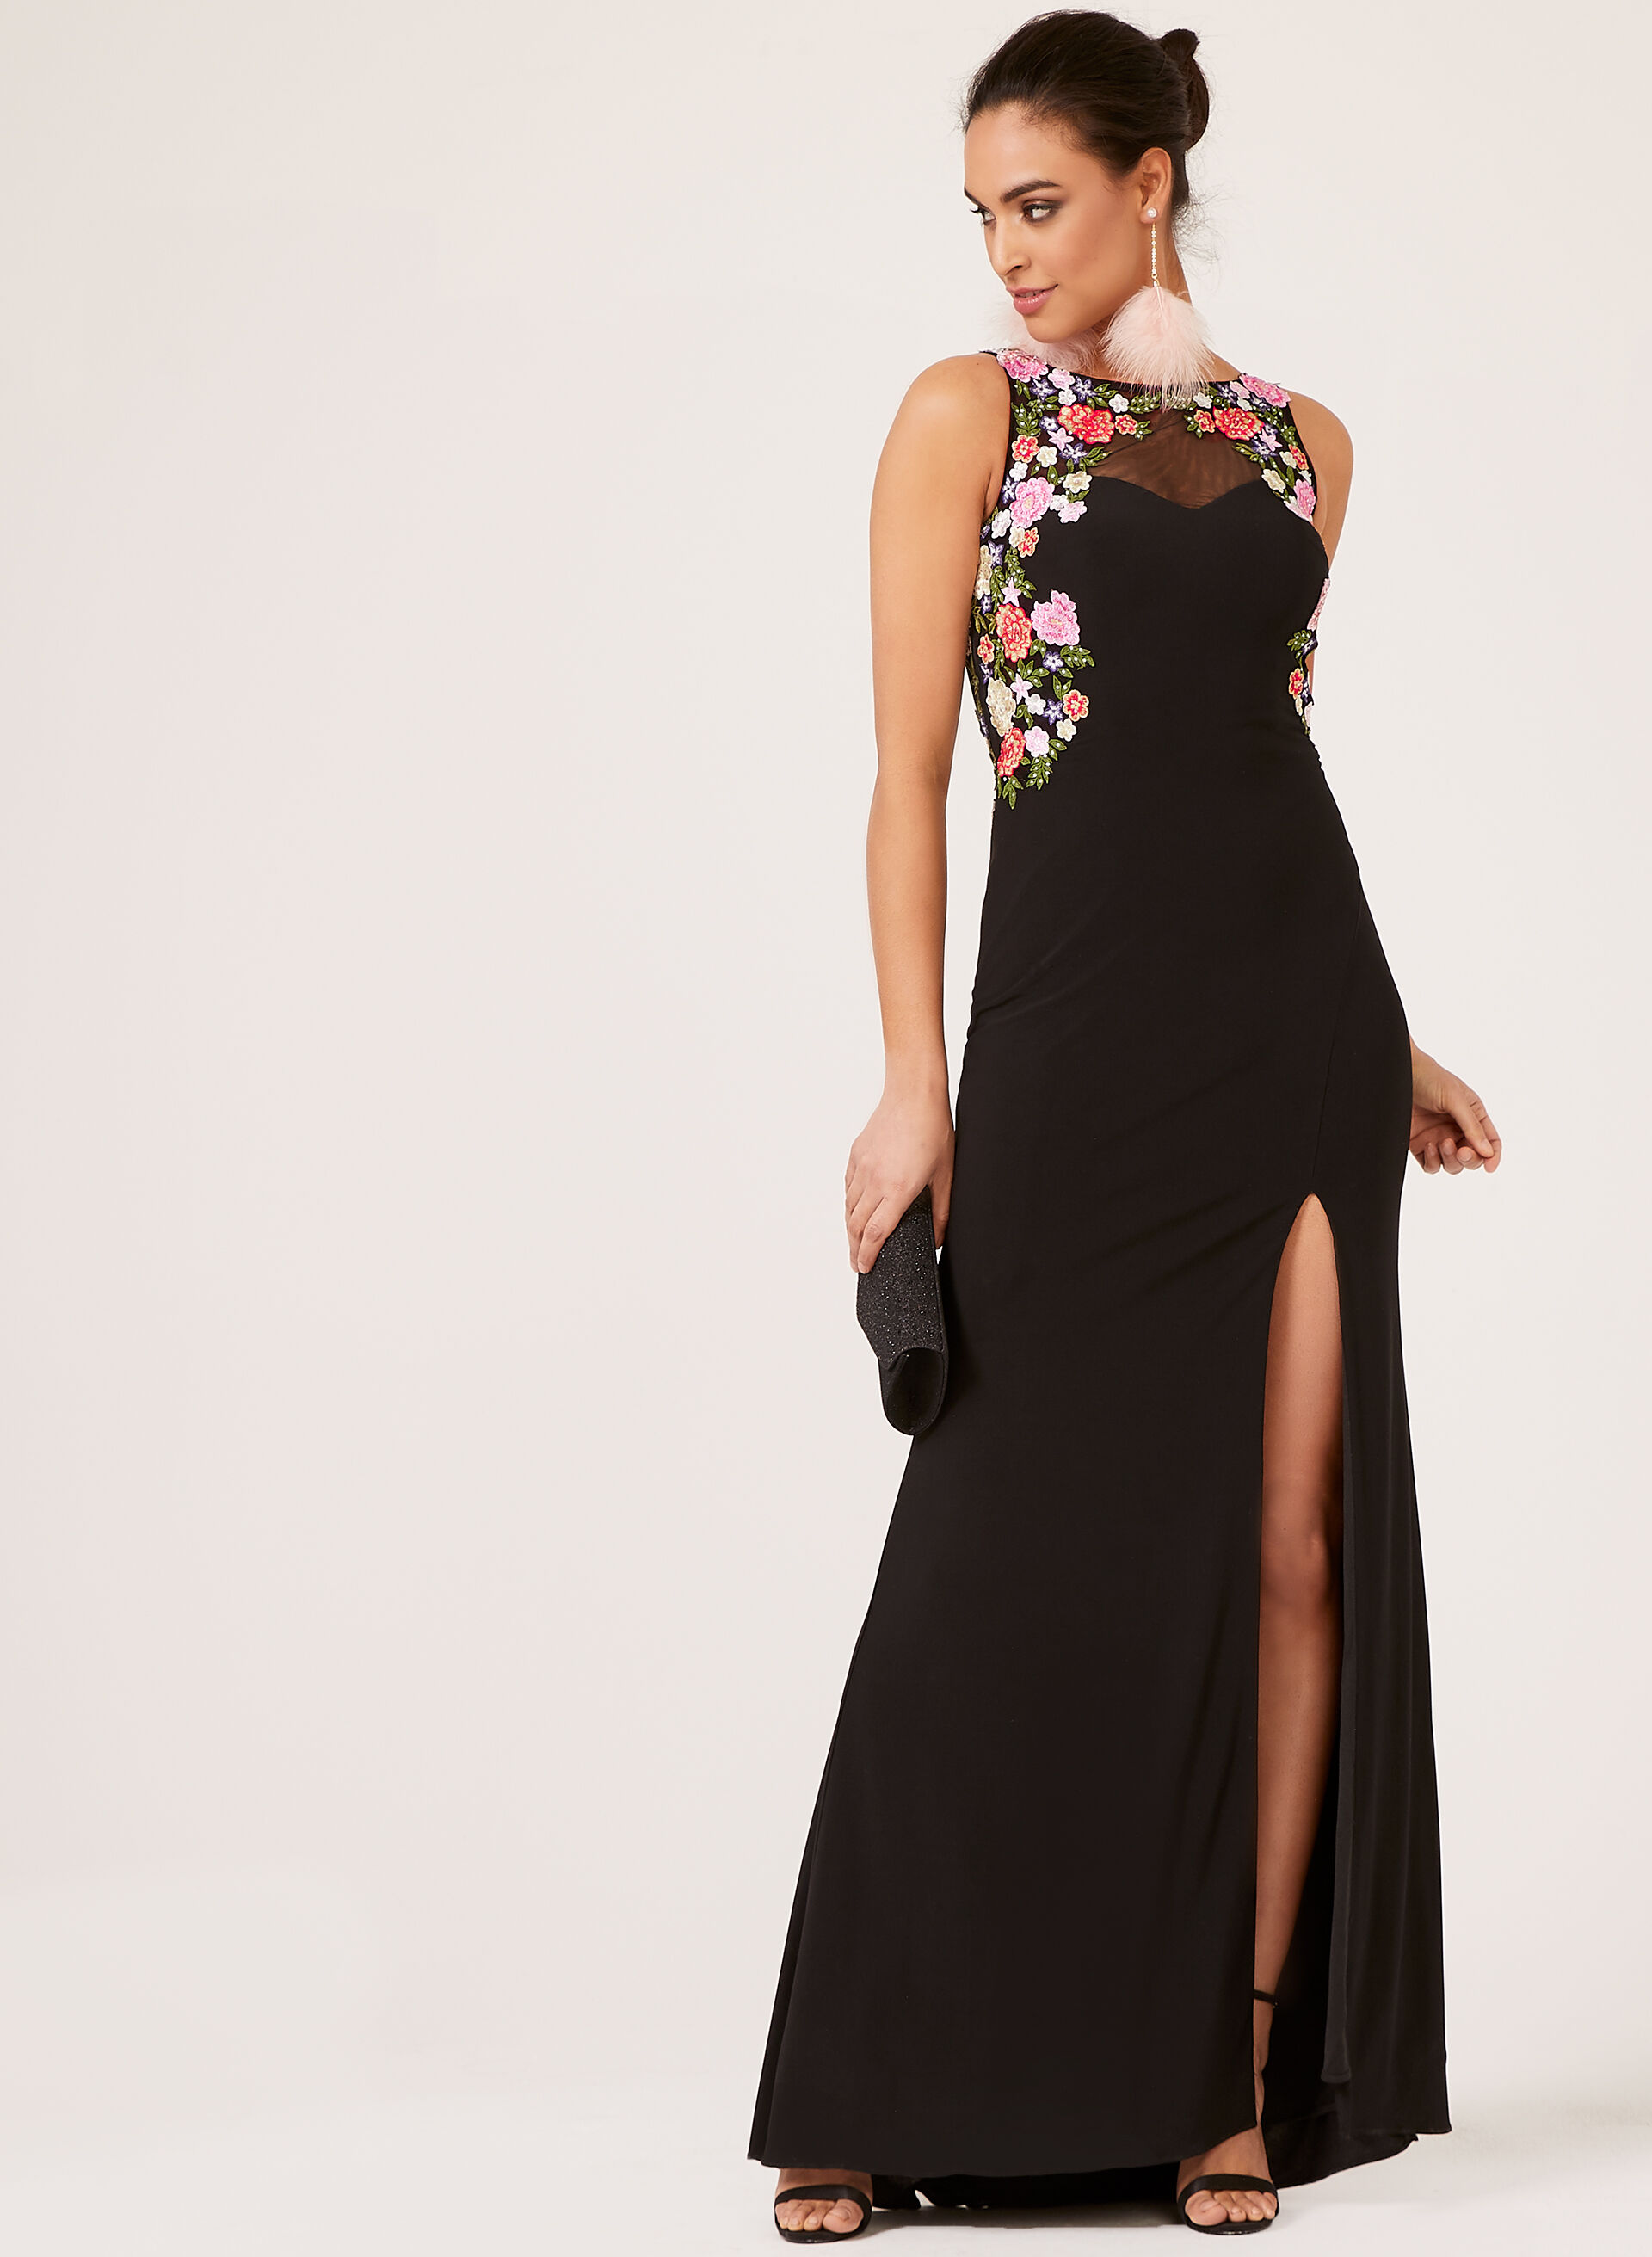 Laura Canada Evening Wear